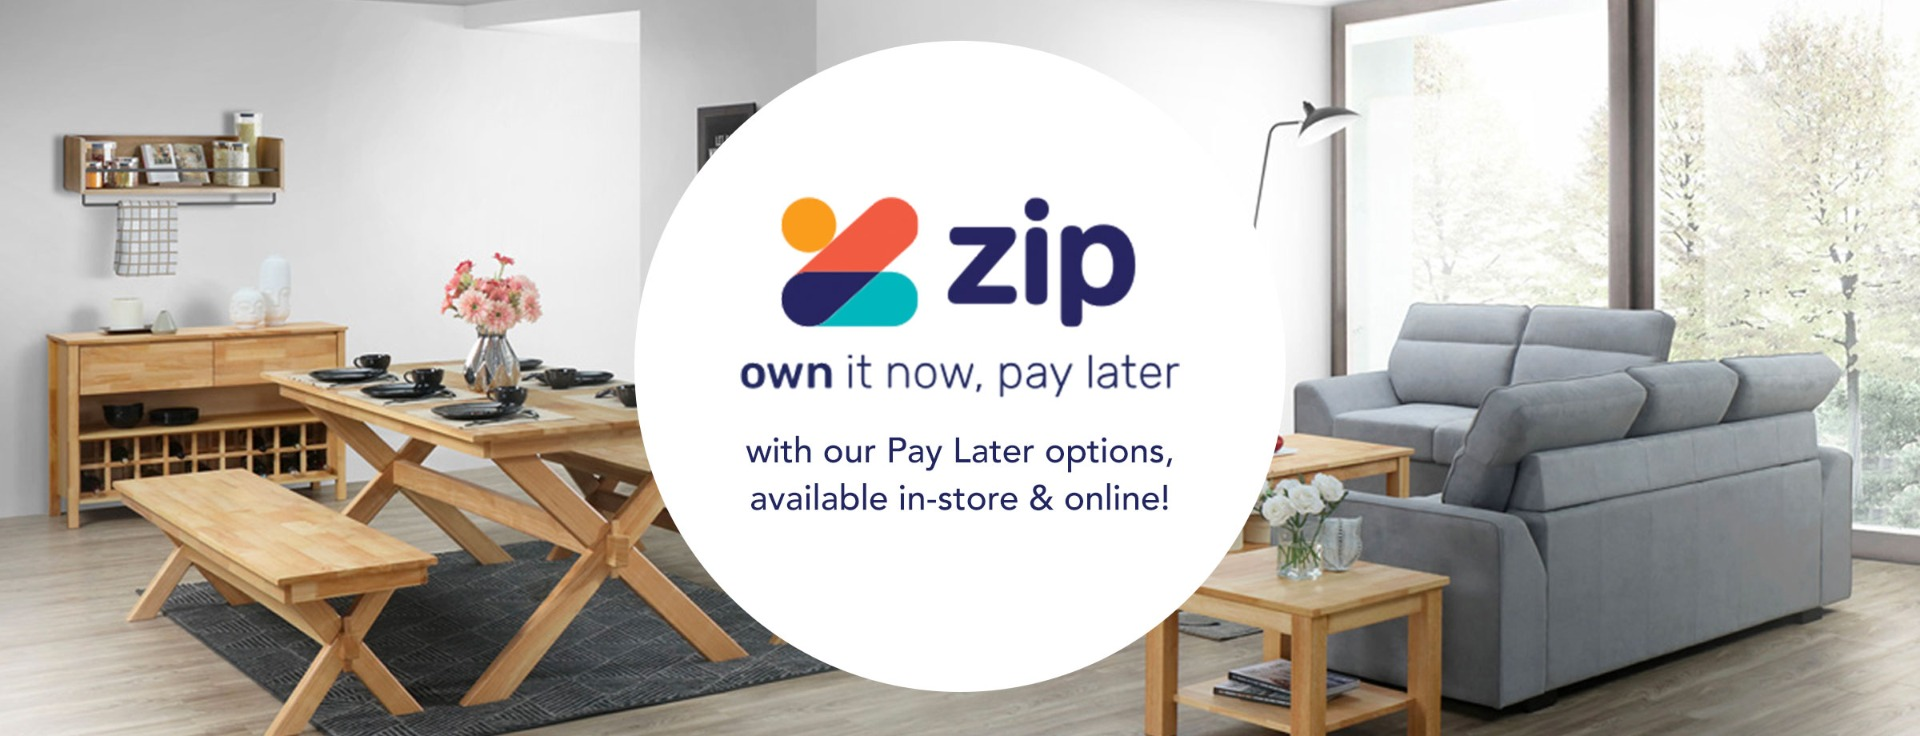 Zip Payment Overview